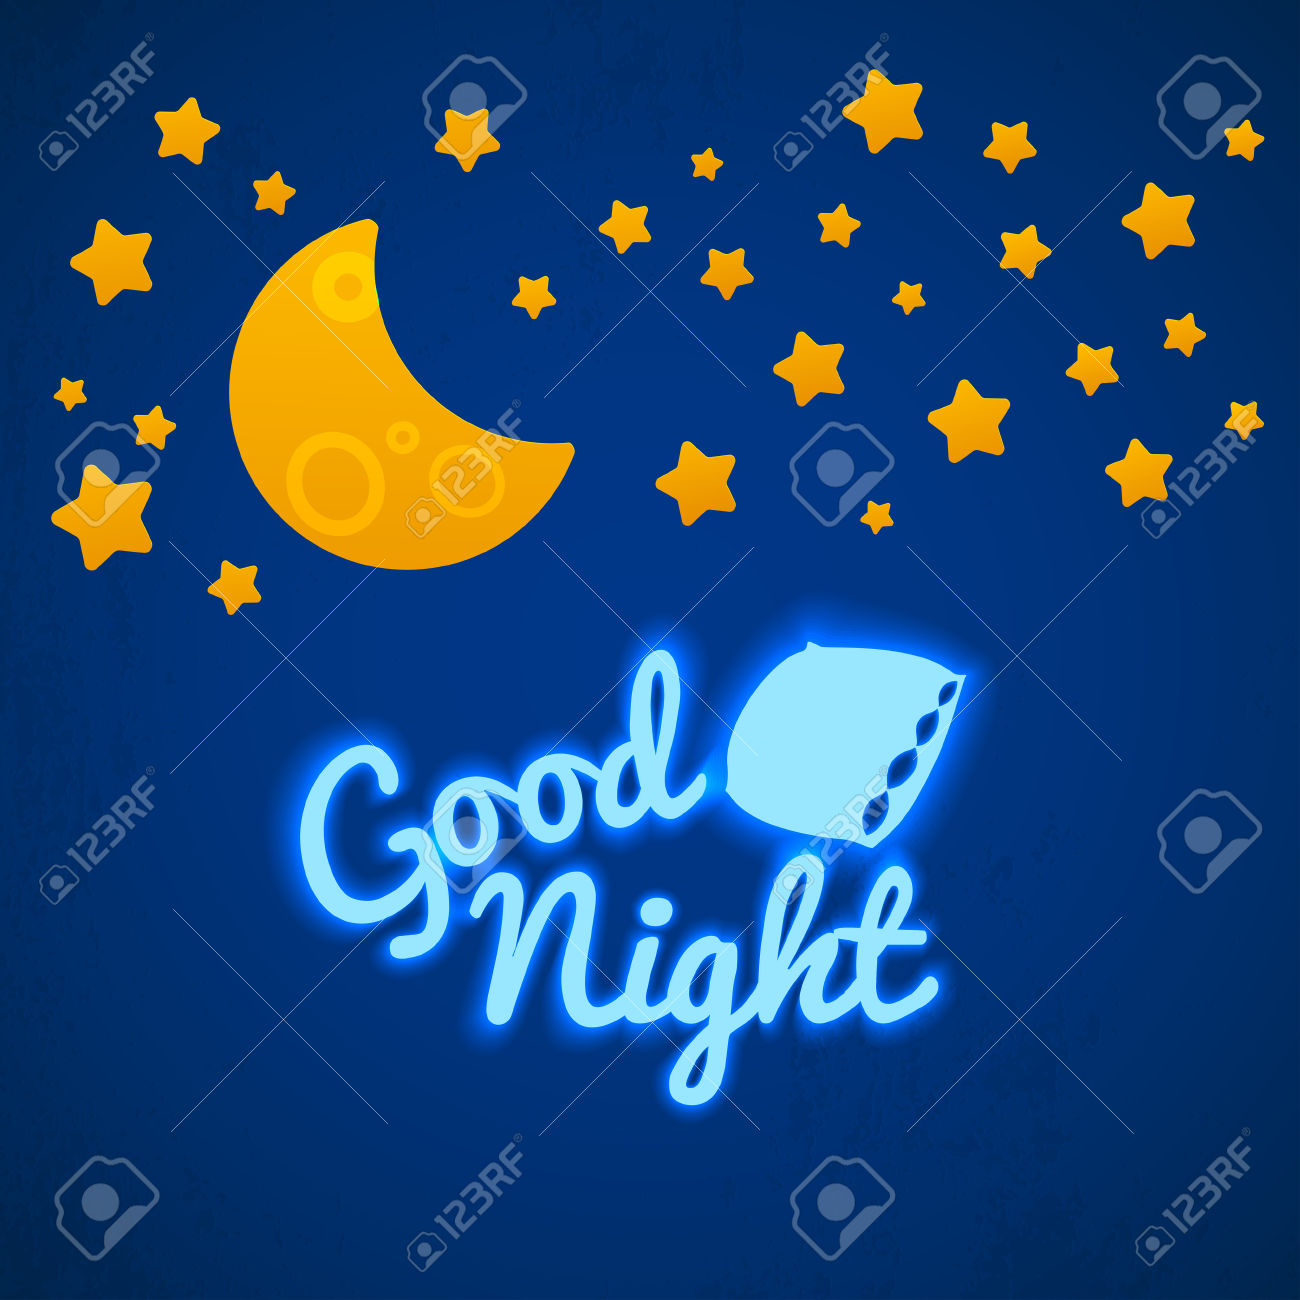 Bed clipart goodnight Messages night messages clipart with